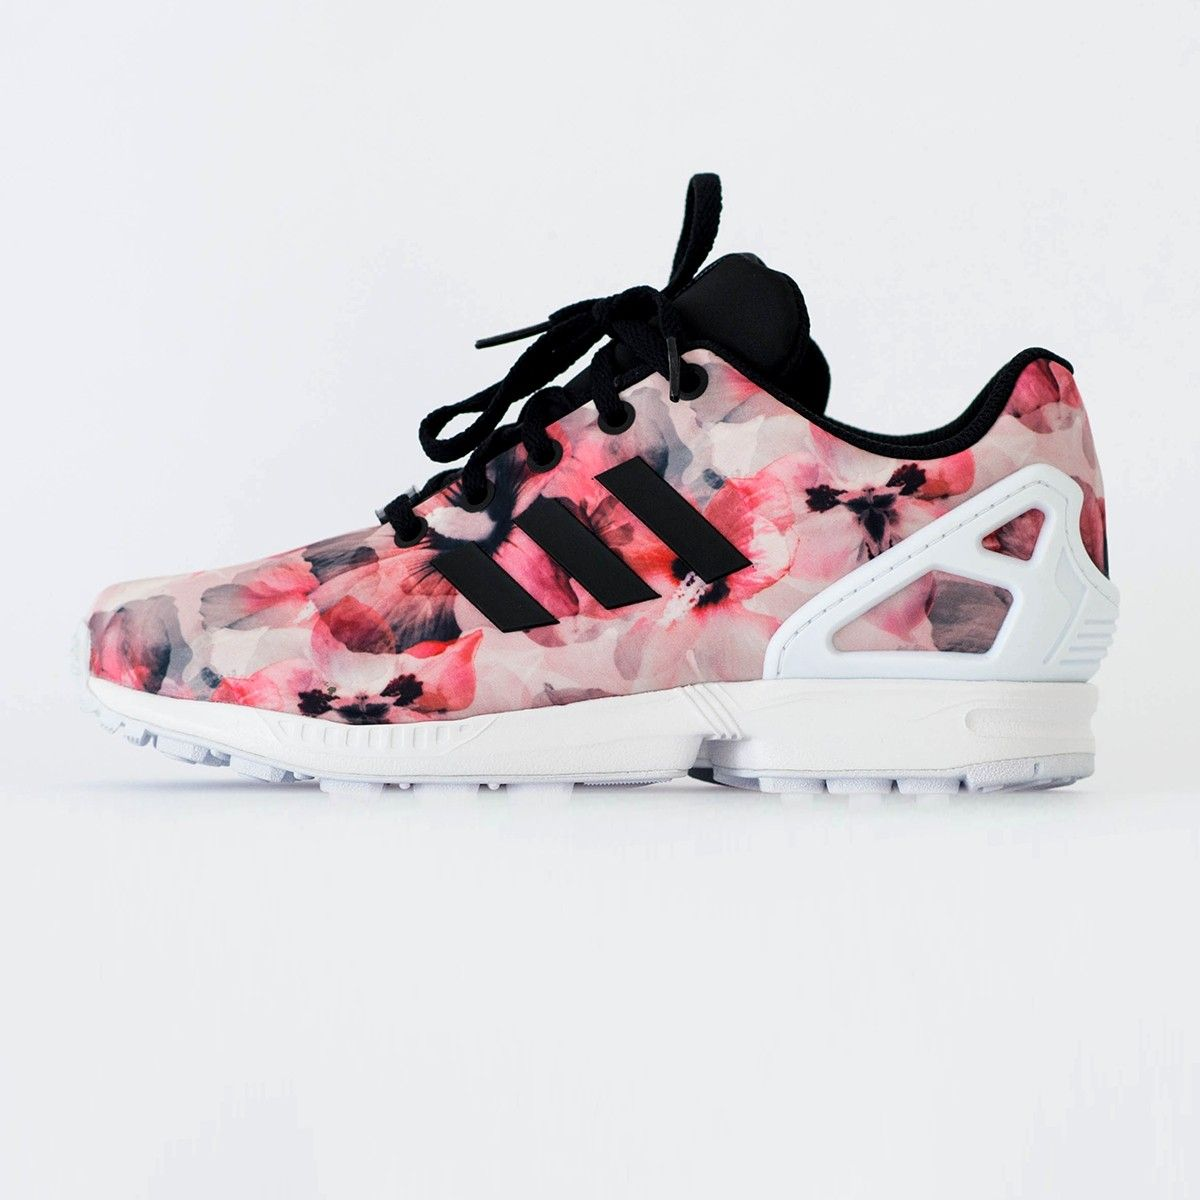 adidas zx flux womens cheap, Adidas Store Online | Adidas Originals Sale  2017